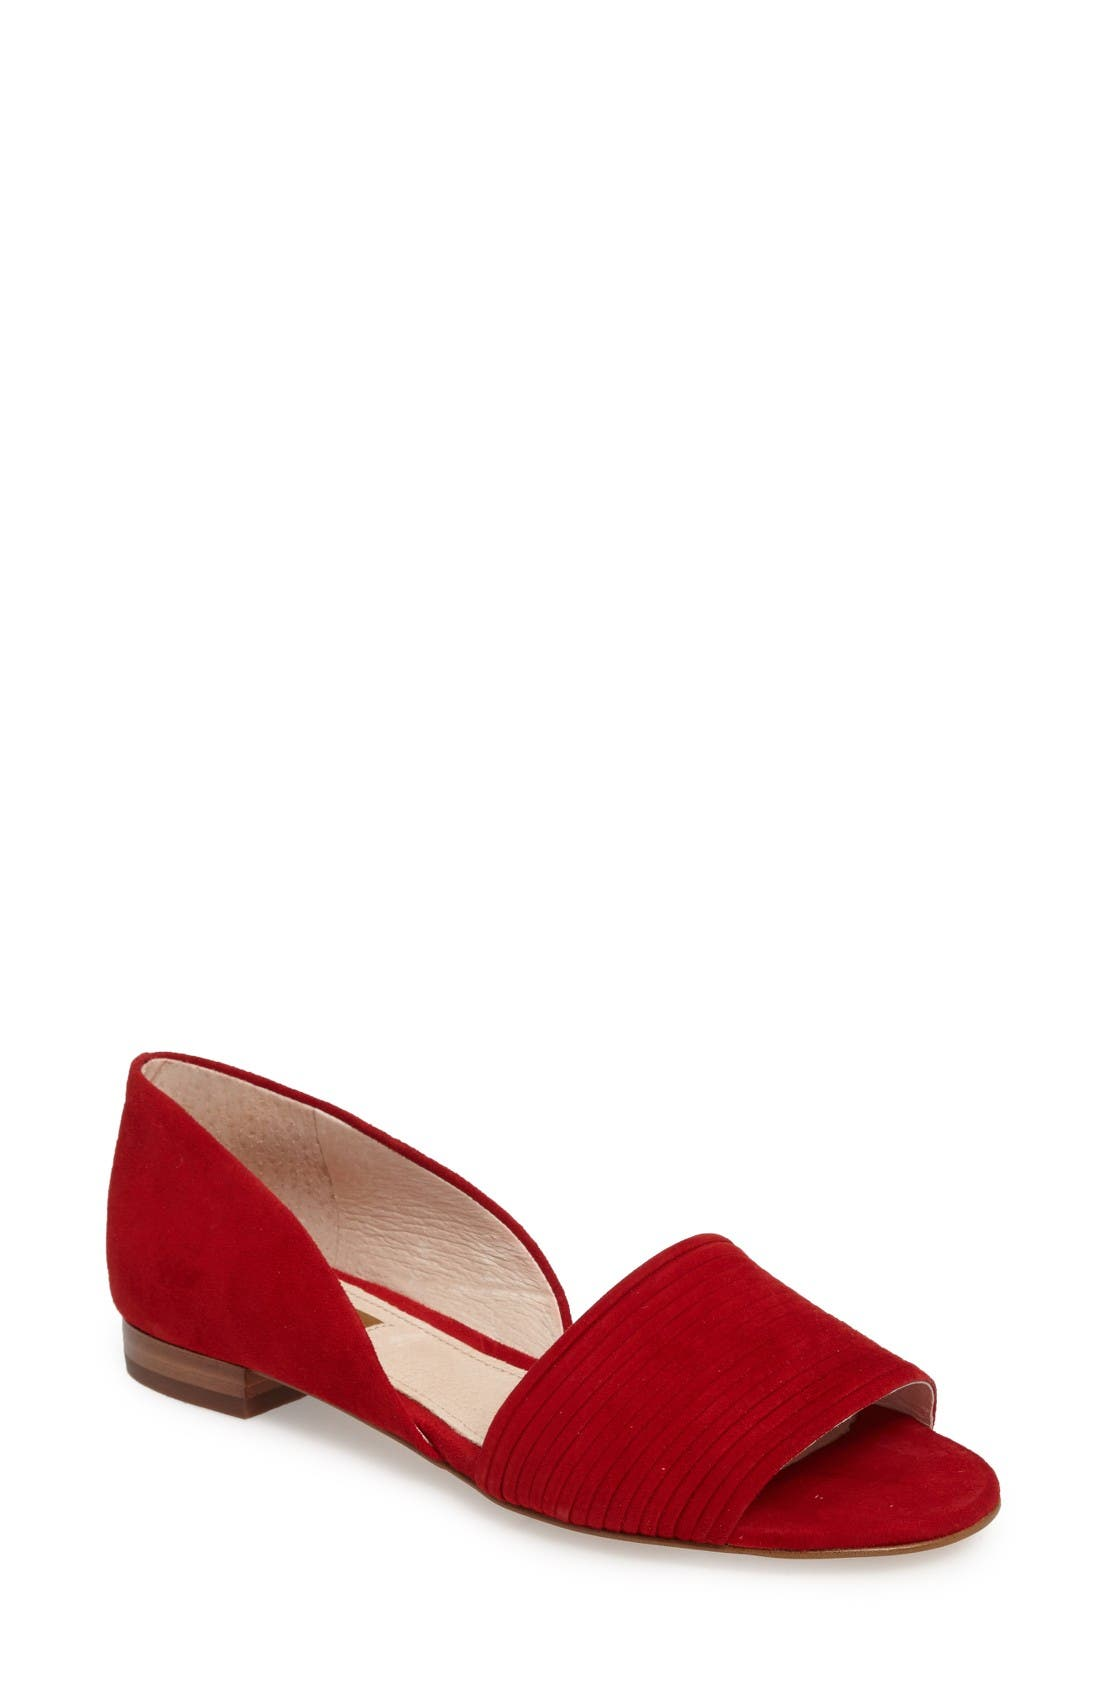 Louise et Cie Comino d'Orsay Flat (Women)